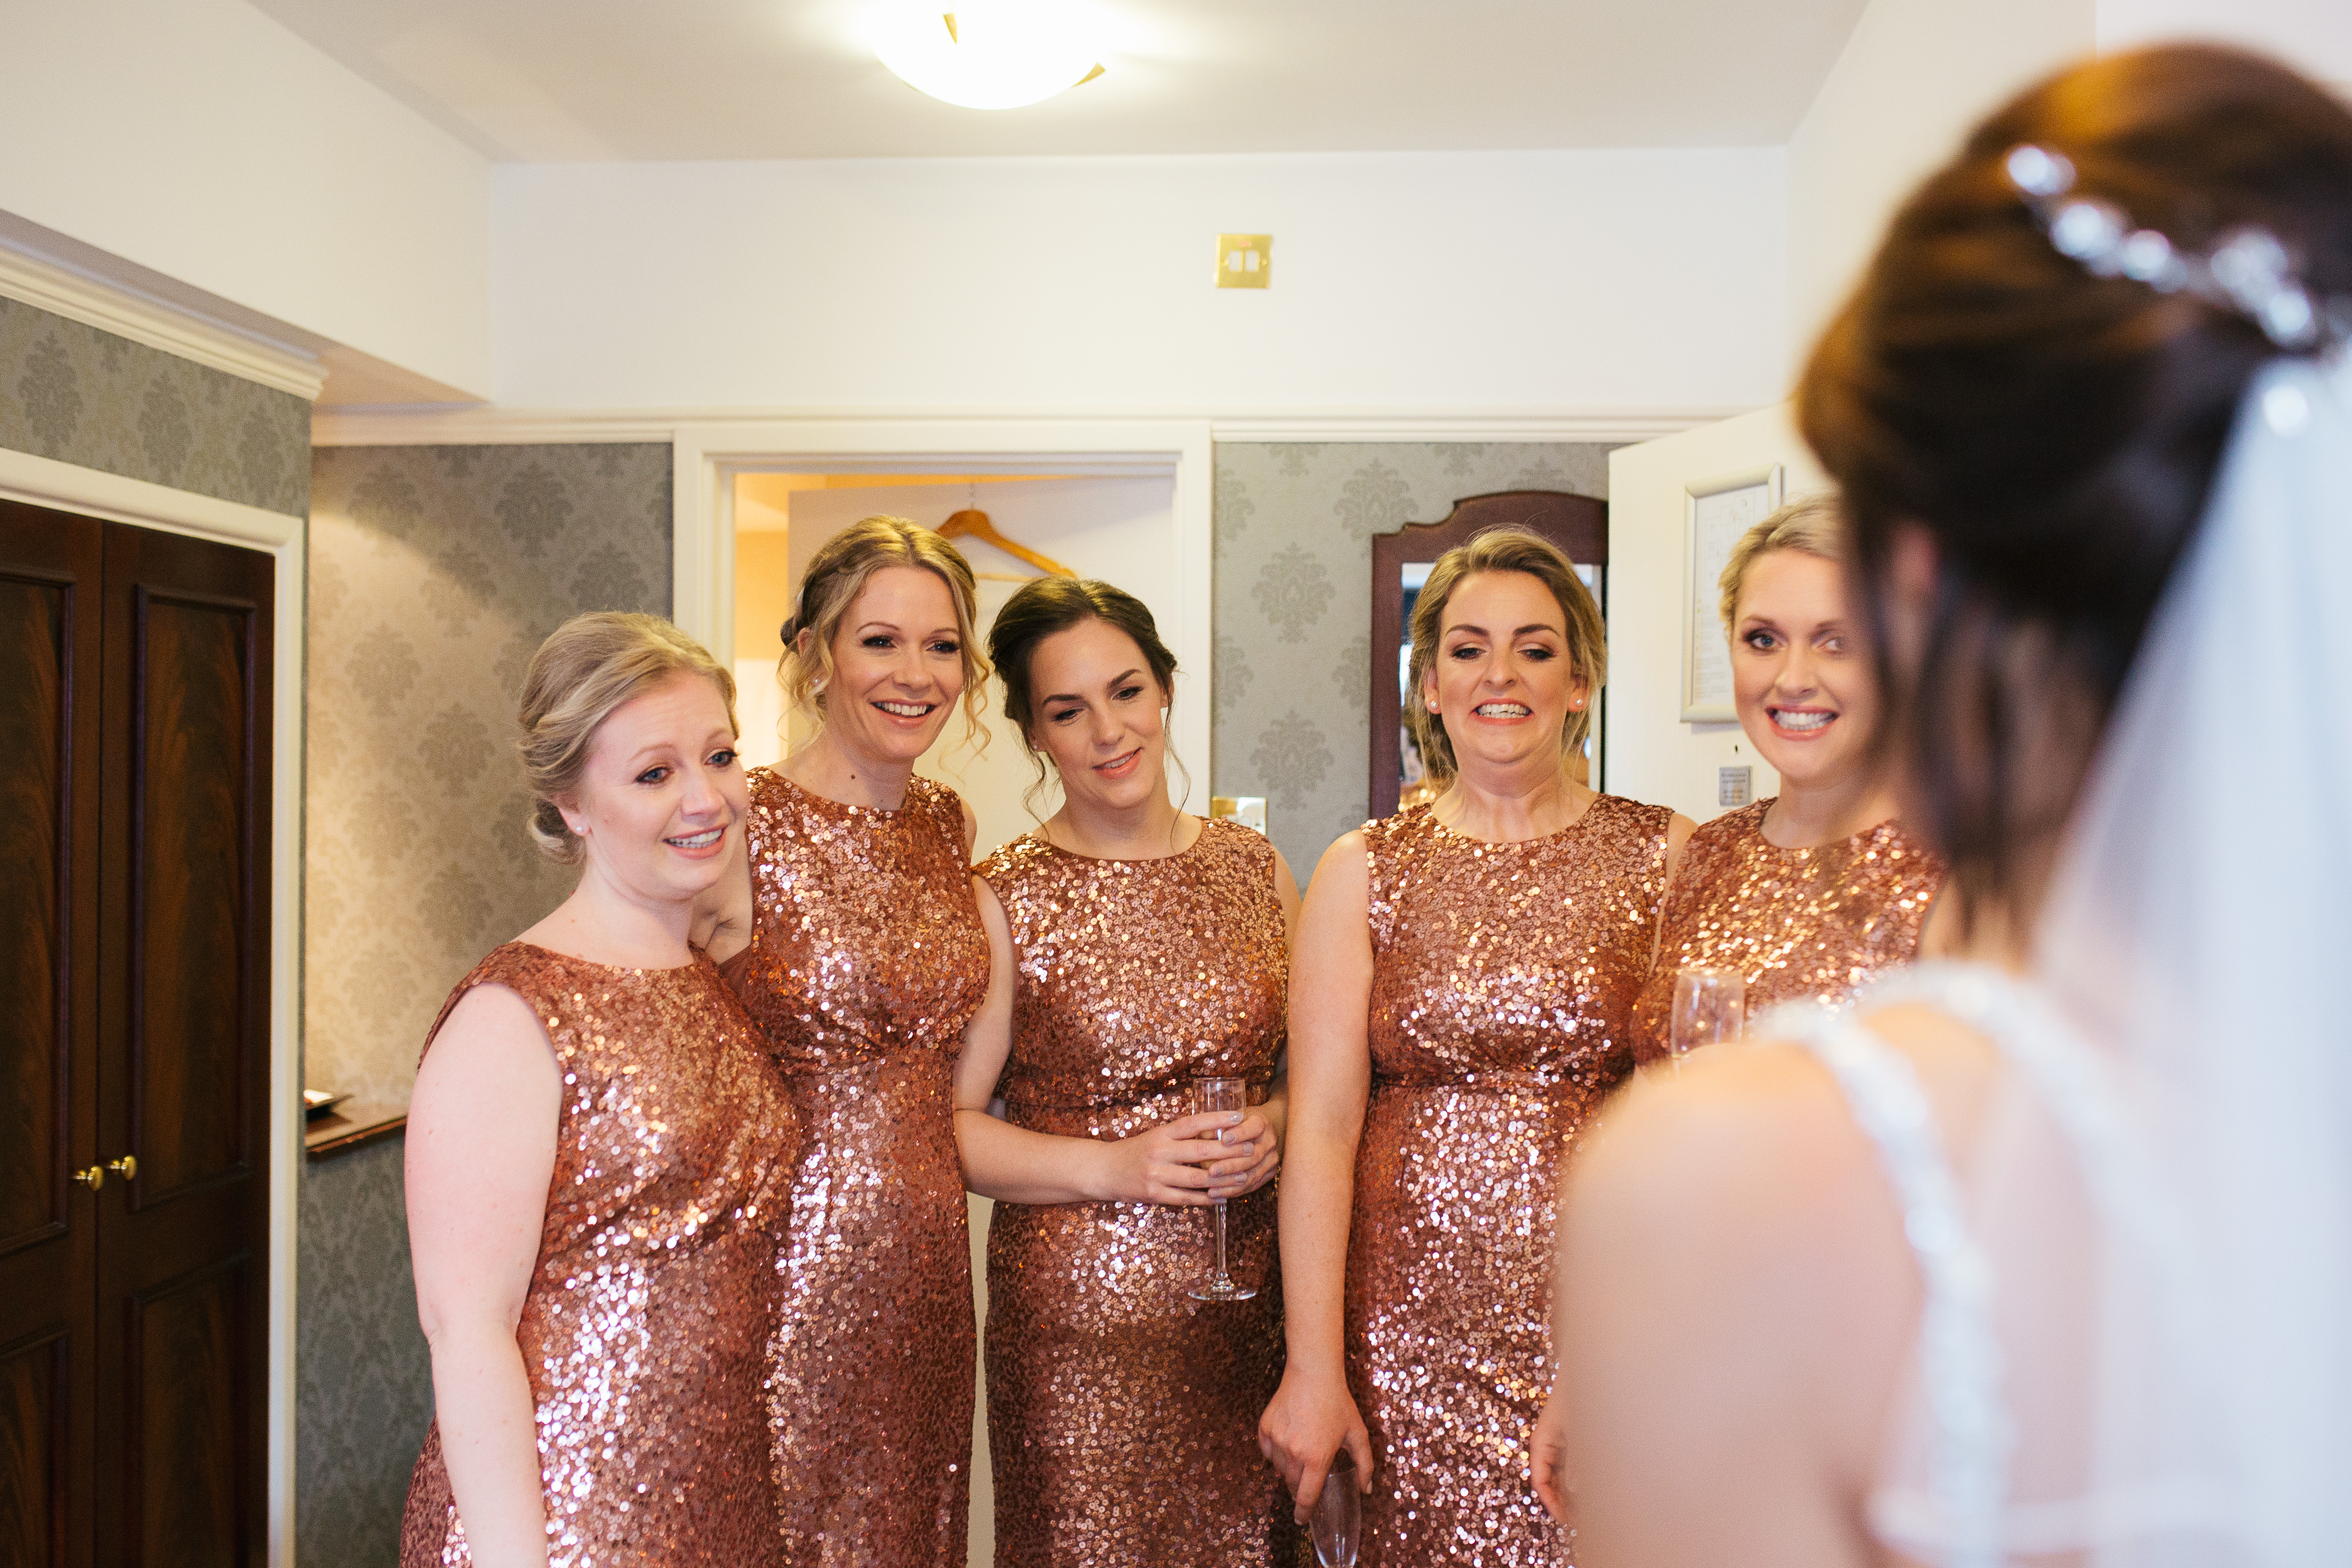 The Normans bridesmaids